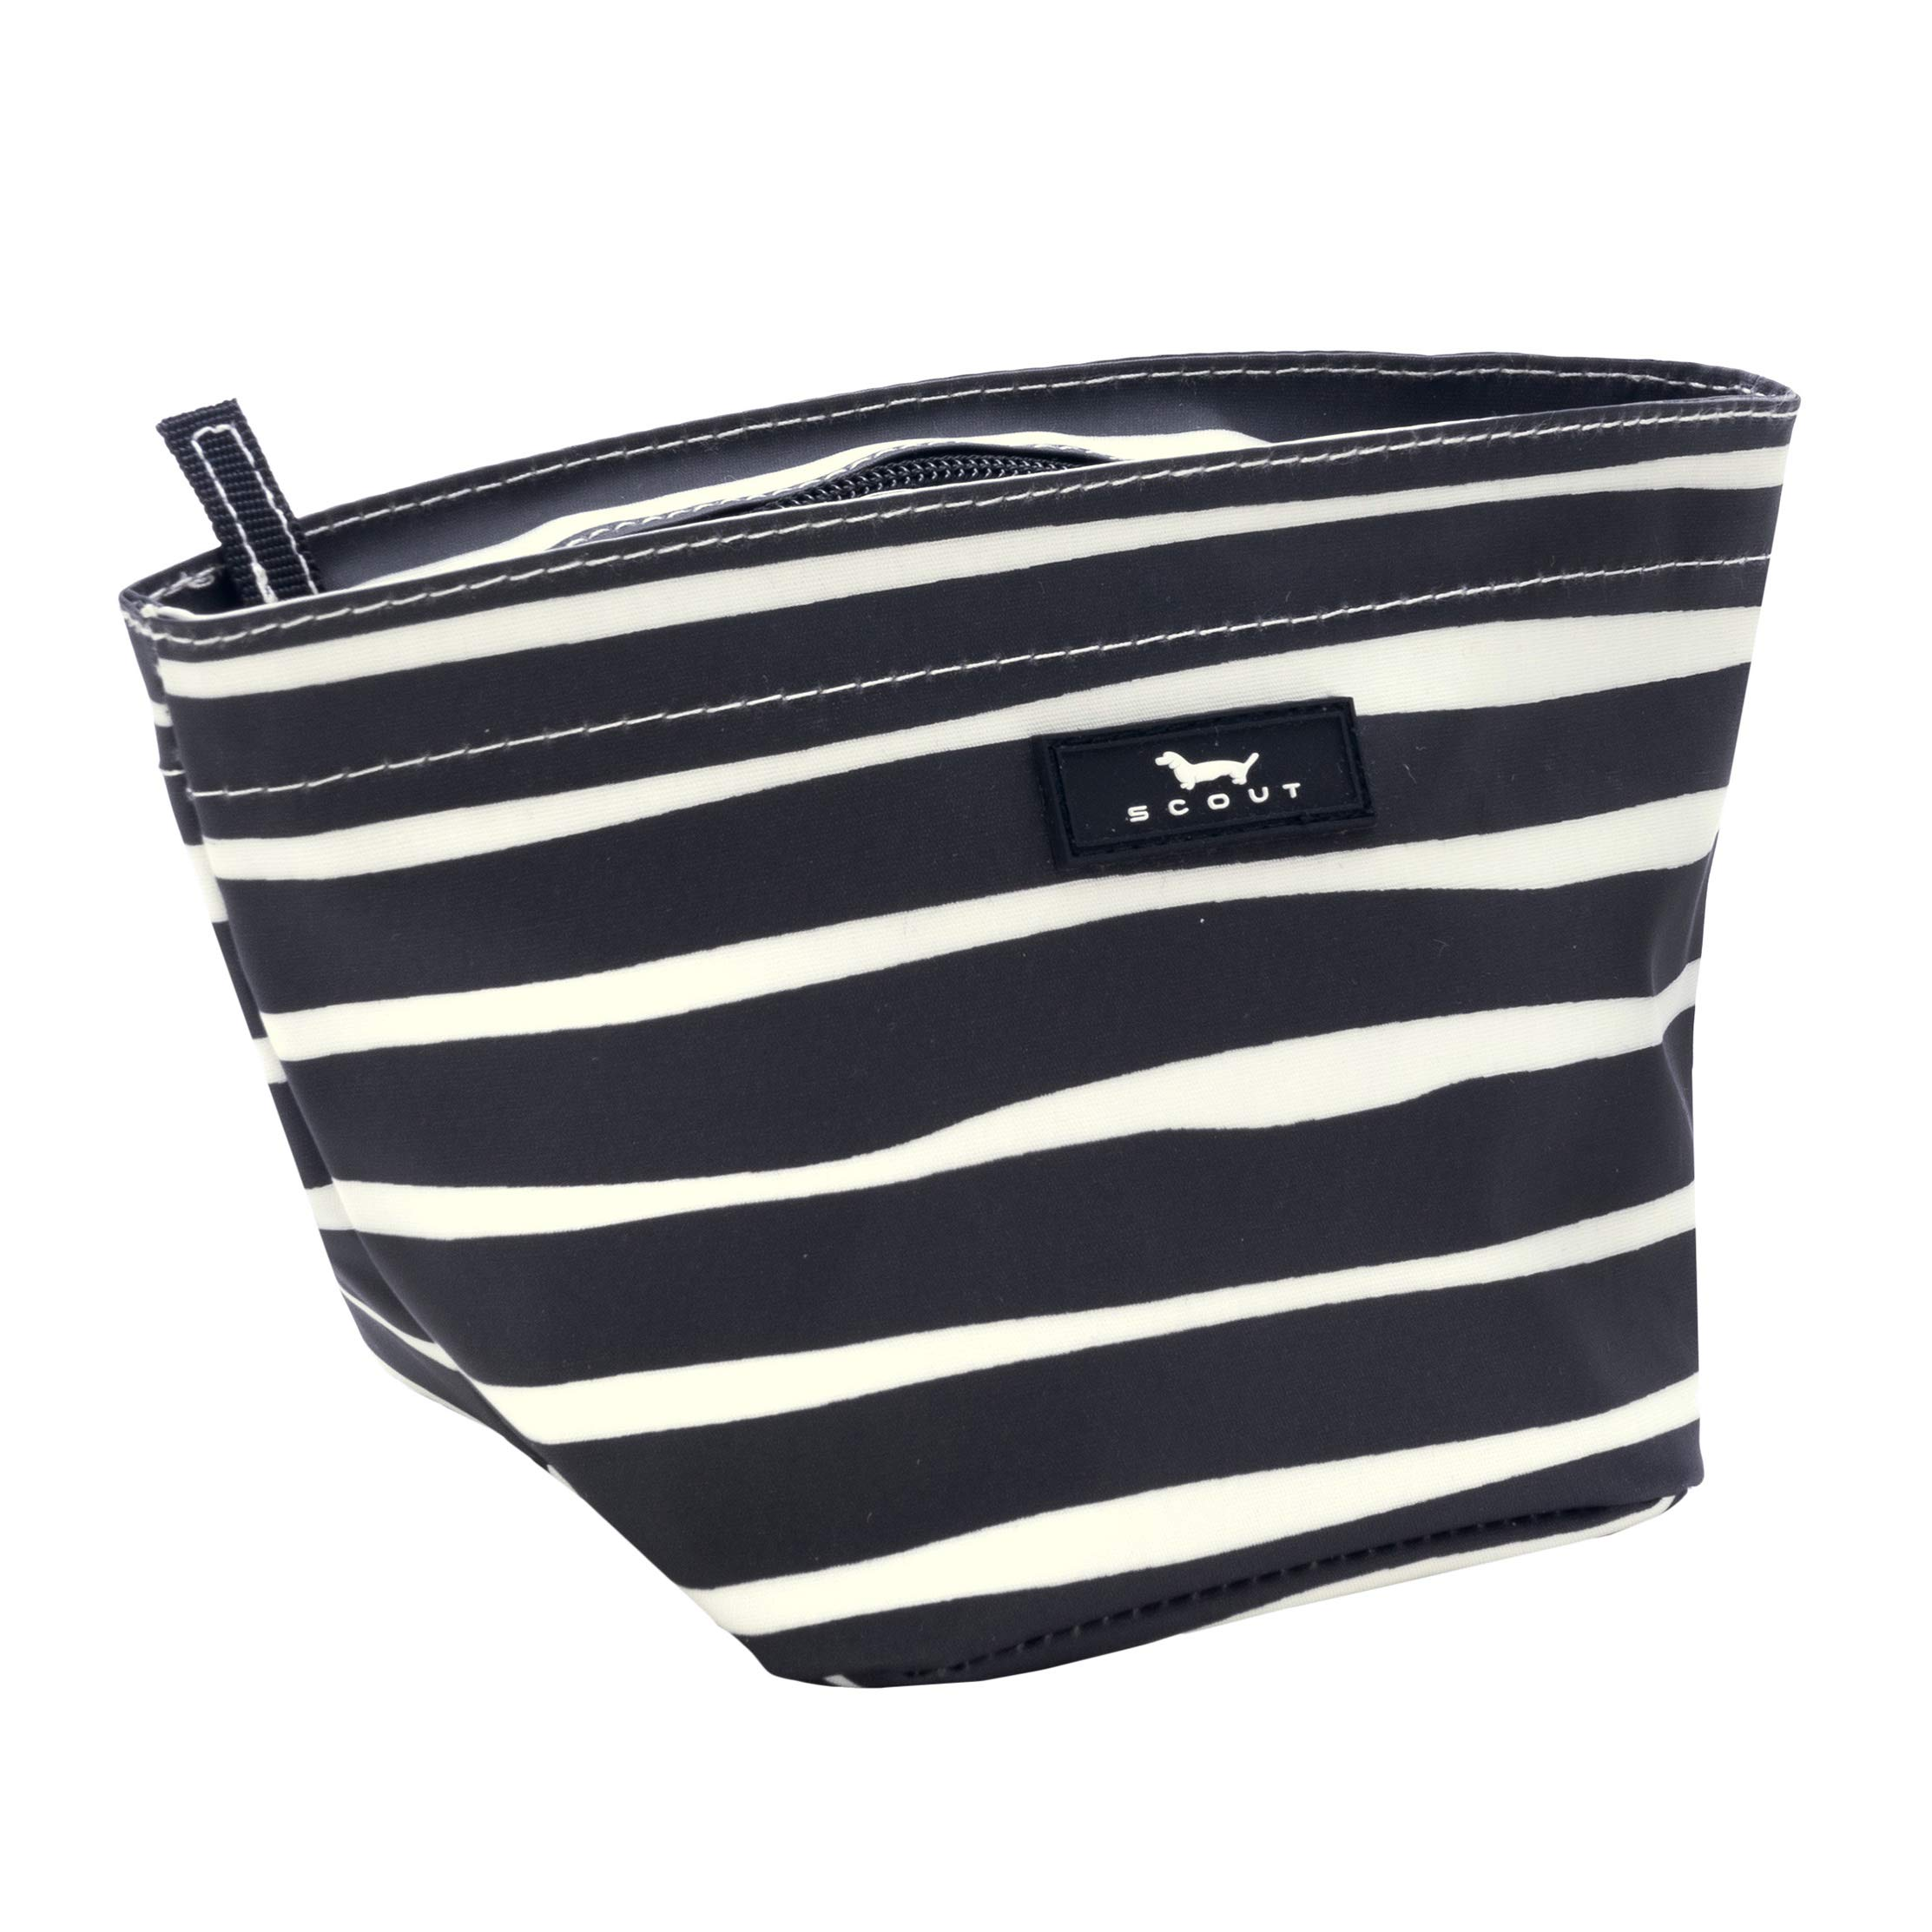 SCOUT Crown Jewels Cosmetic, Makeup & Small Accessory Bag, Water Resistant, Zips Closed, Ren Noir